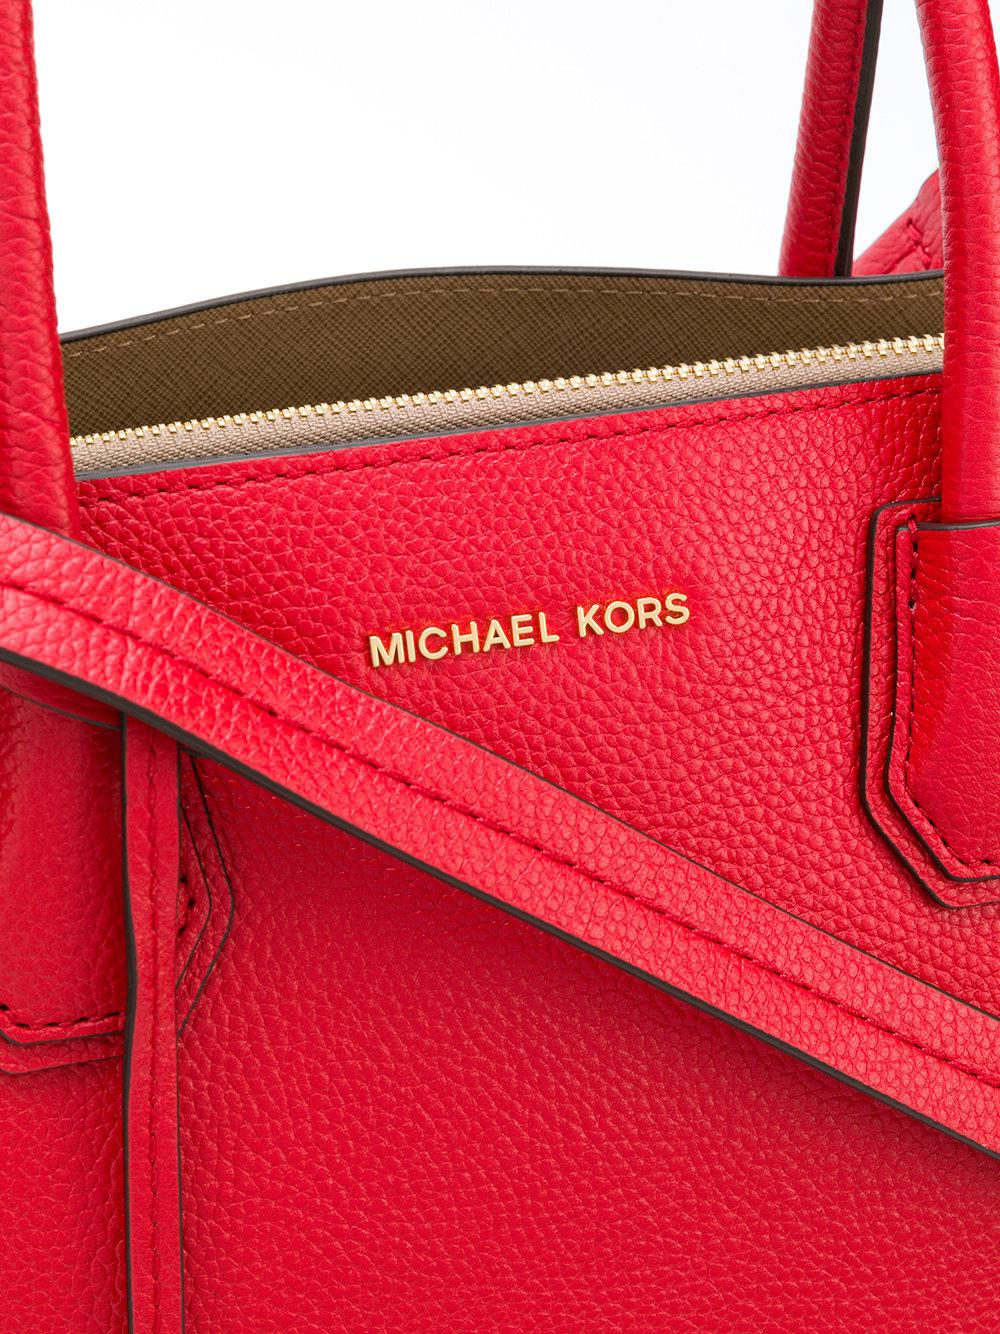 83abd4196ef0 MICHAEL Michael Kors Mercer Extra-large Tote in Red - Lyst